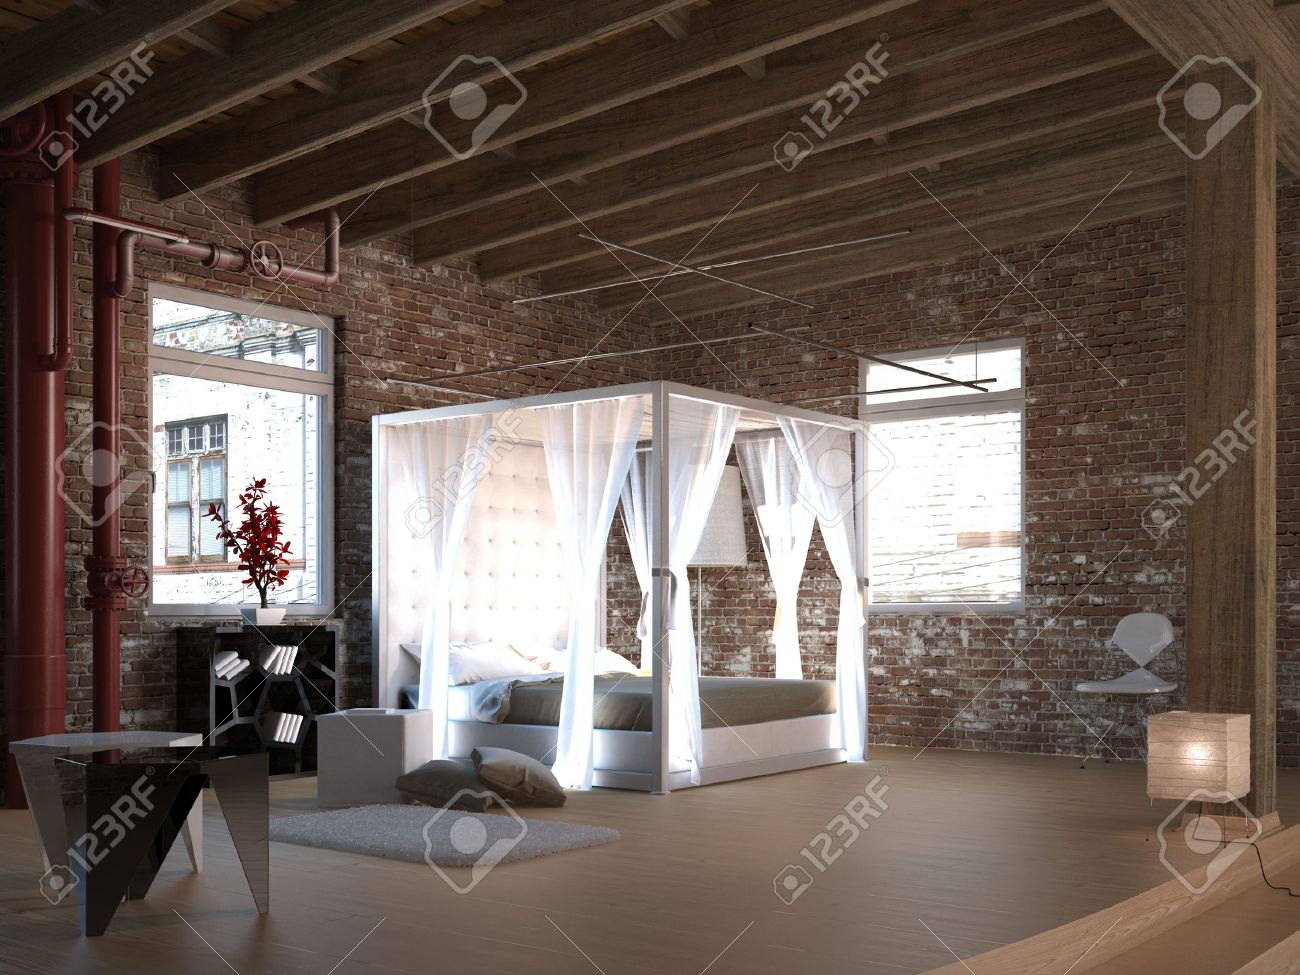 canopy bed design with brick wall stock photo, picture and royalty